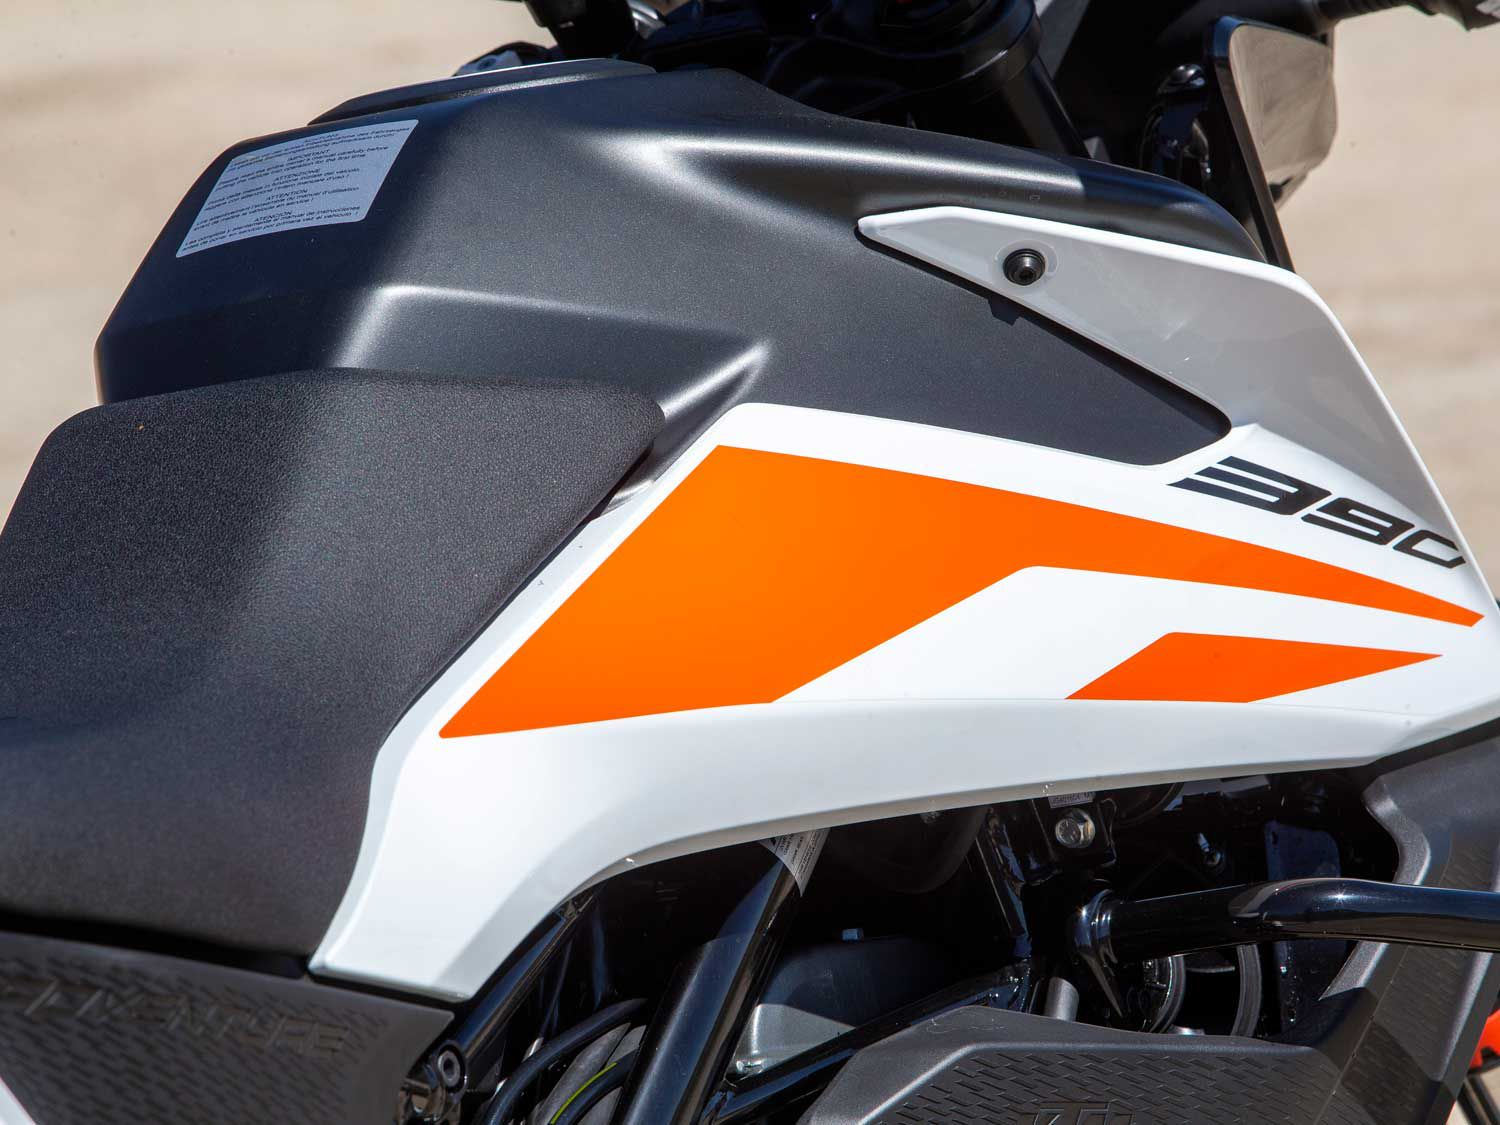 The 390 Adventure carries 3.8 gallons of fuel, which nets a range of more than 200 miles.